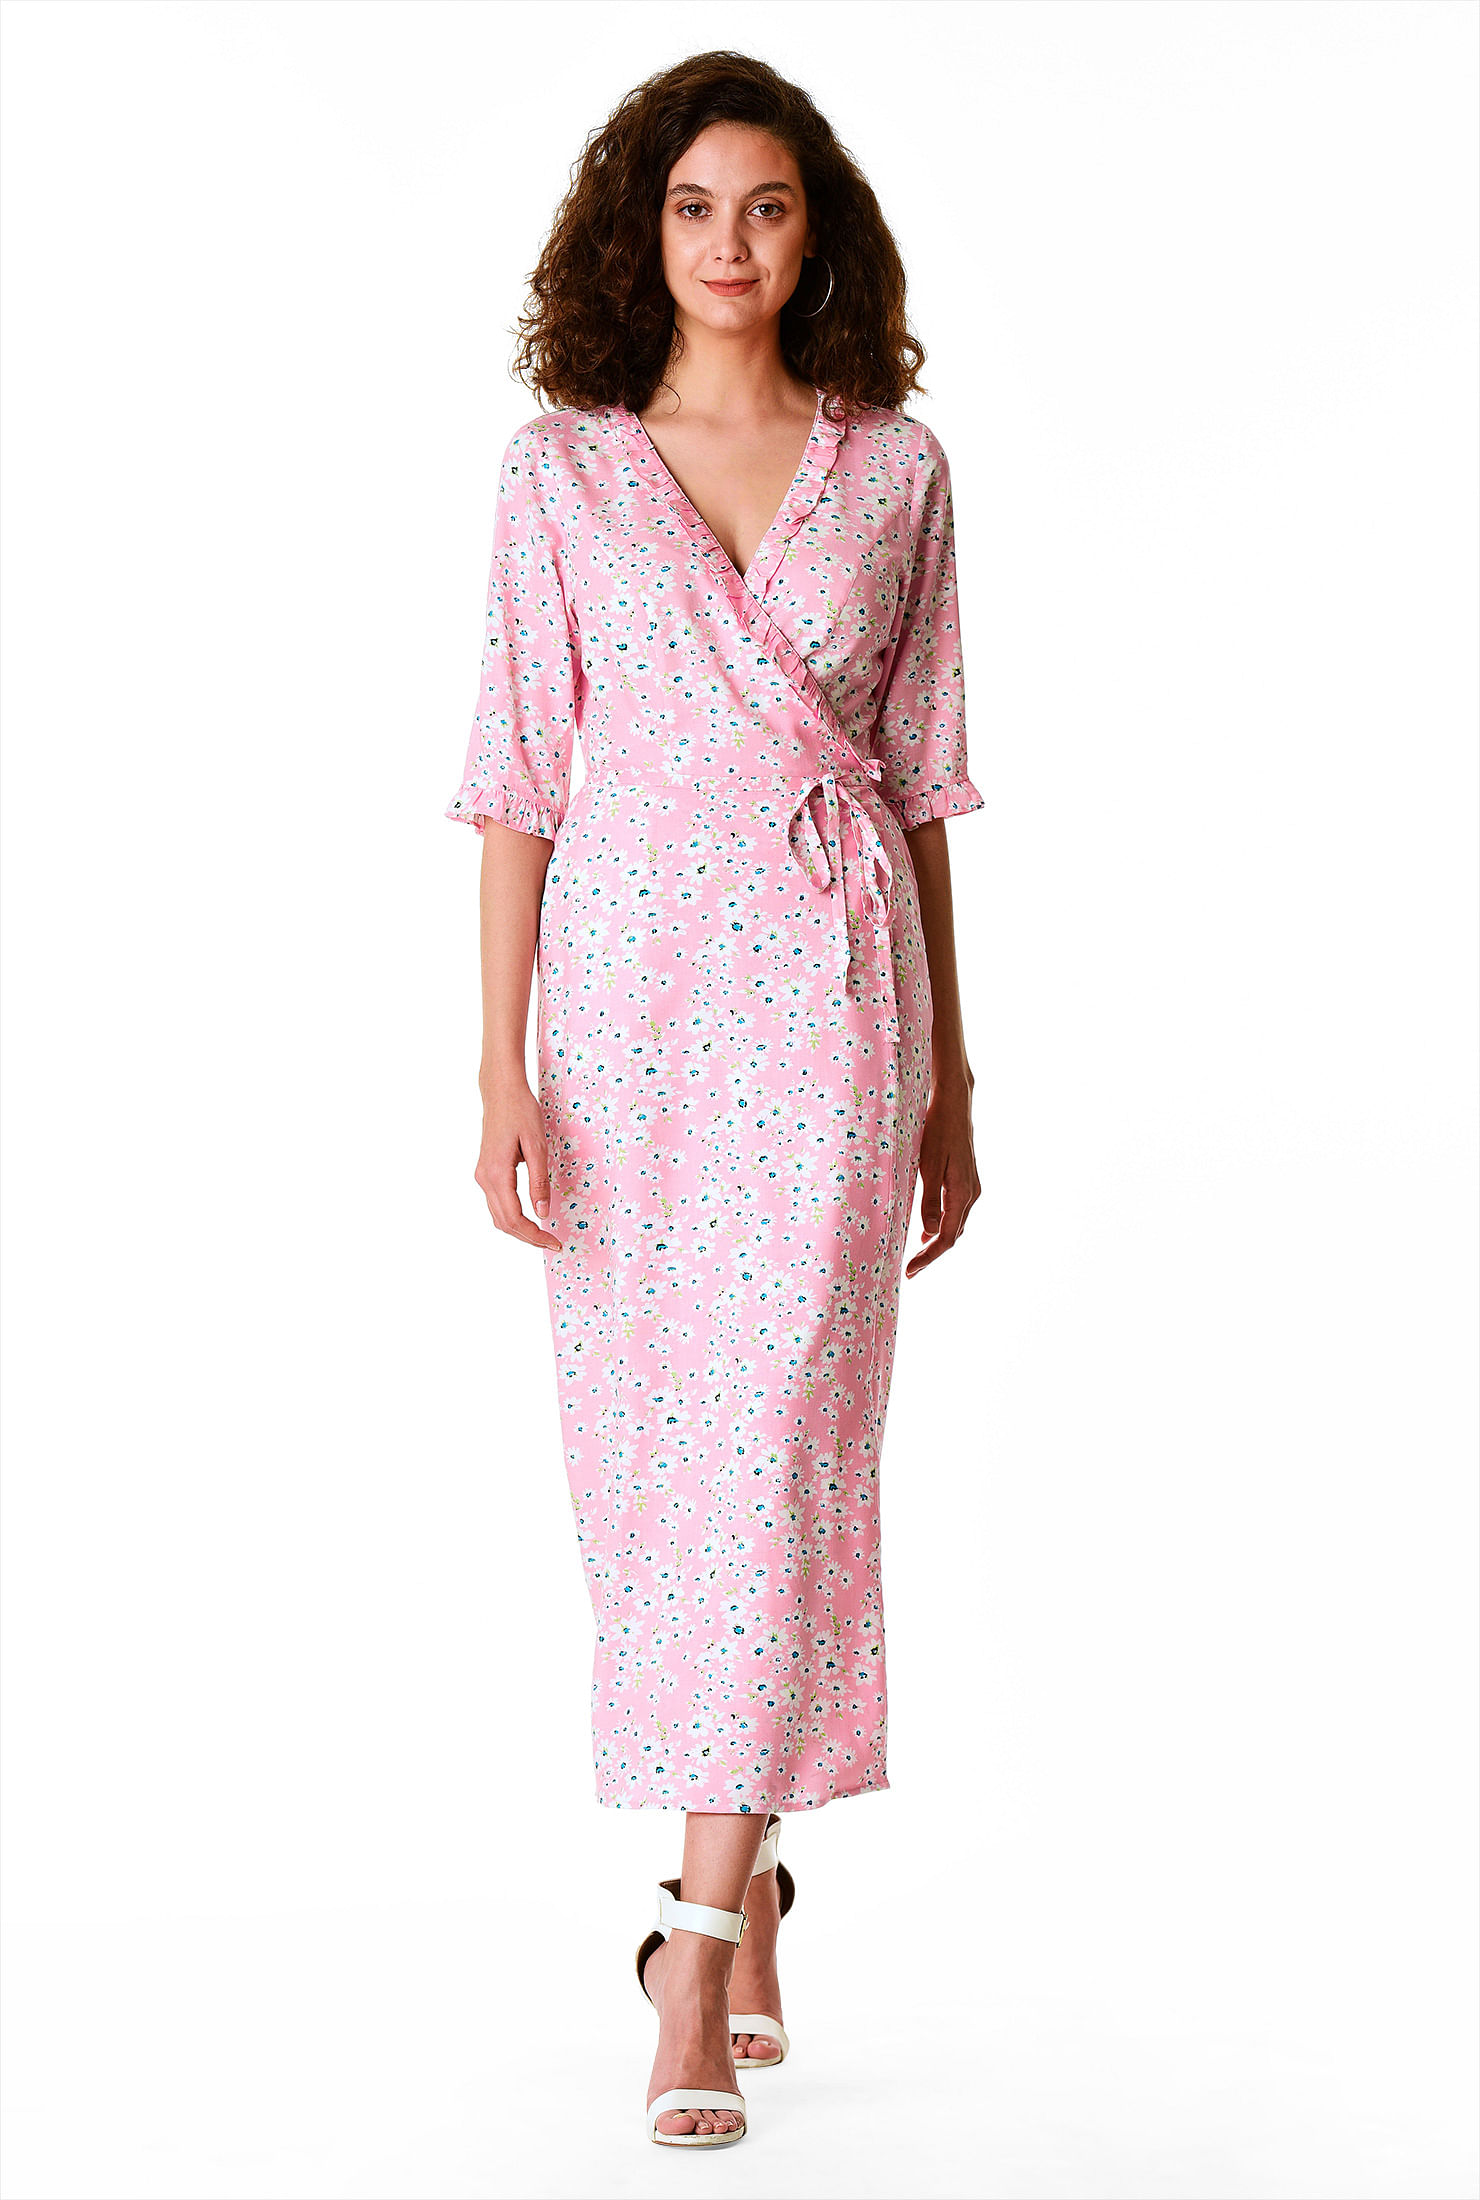 1930s Day Dresses, Afternoon Dresses History Ruffle frill floral print wrap dress $39.95 AT vintagedancer.com